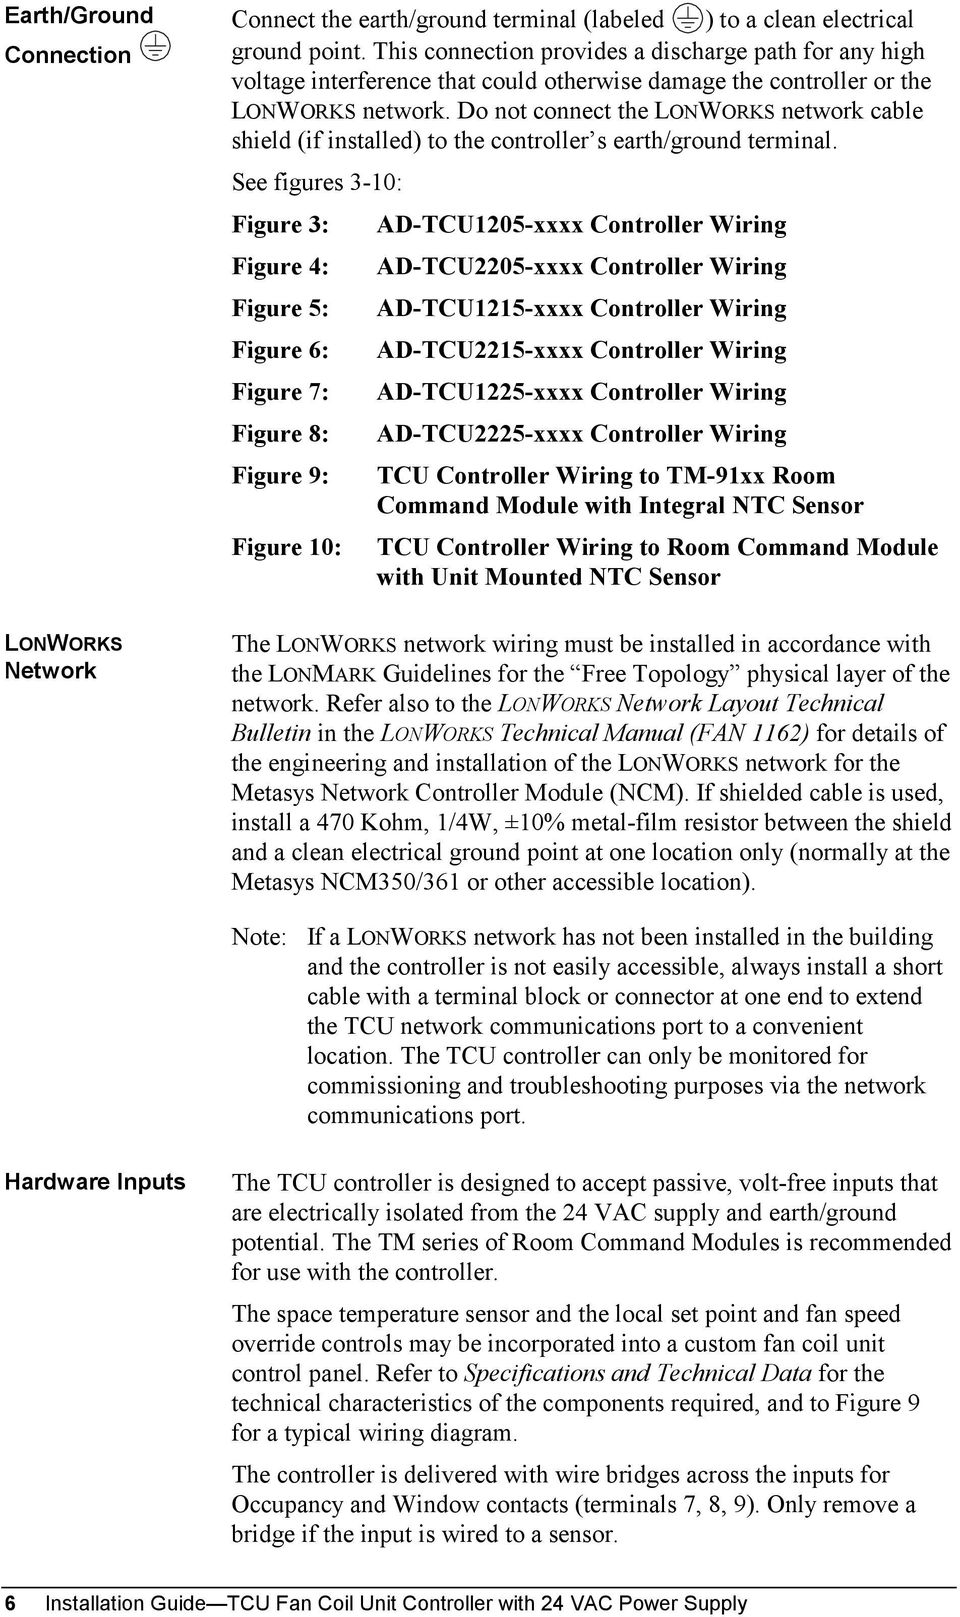 Tcu Fan Coil Unit Controller Pdf Ez Wiring Diagram Do Not Connect The Lonworks Network Cable Shield If Installed To S